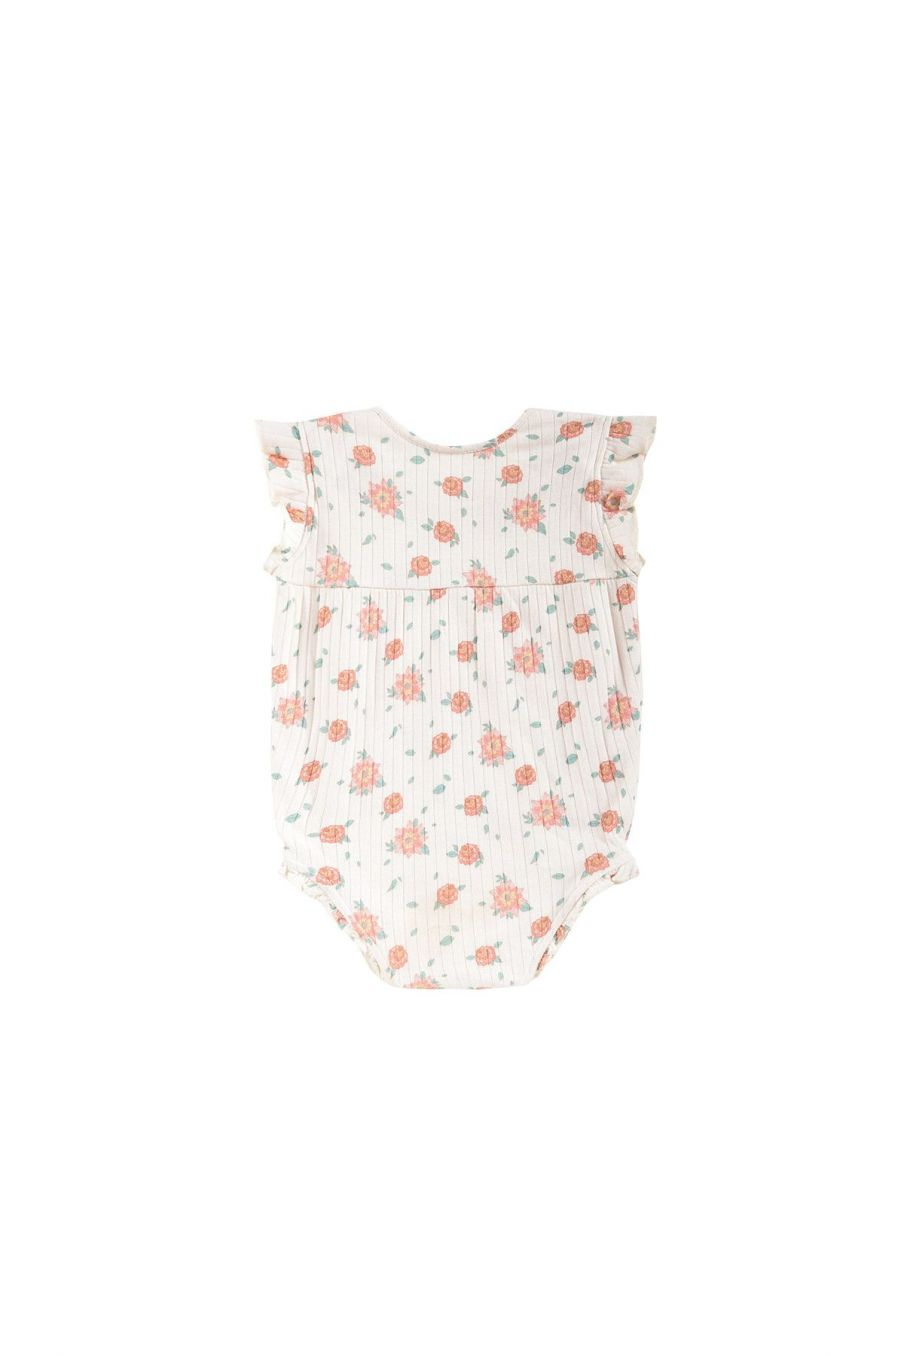 boheme chic vintage body bébé fille adonis off-white flowers